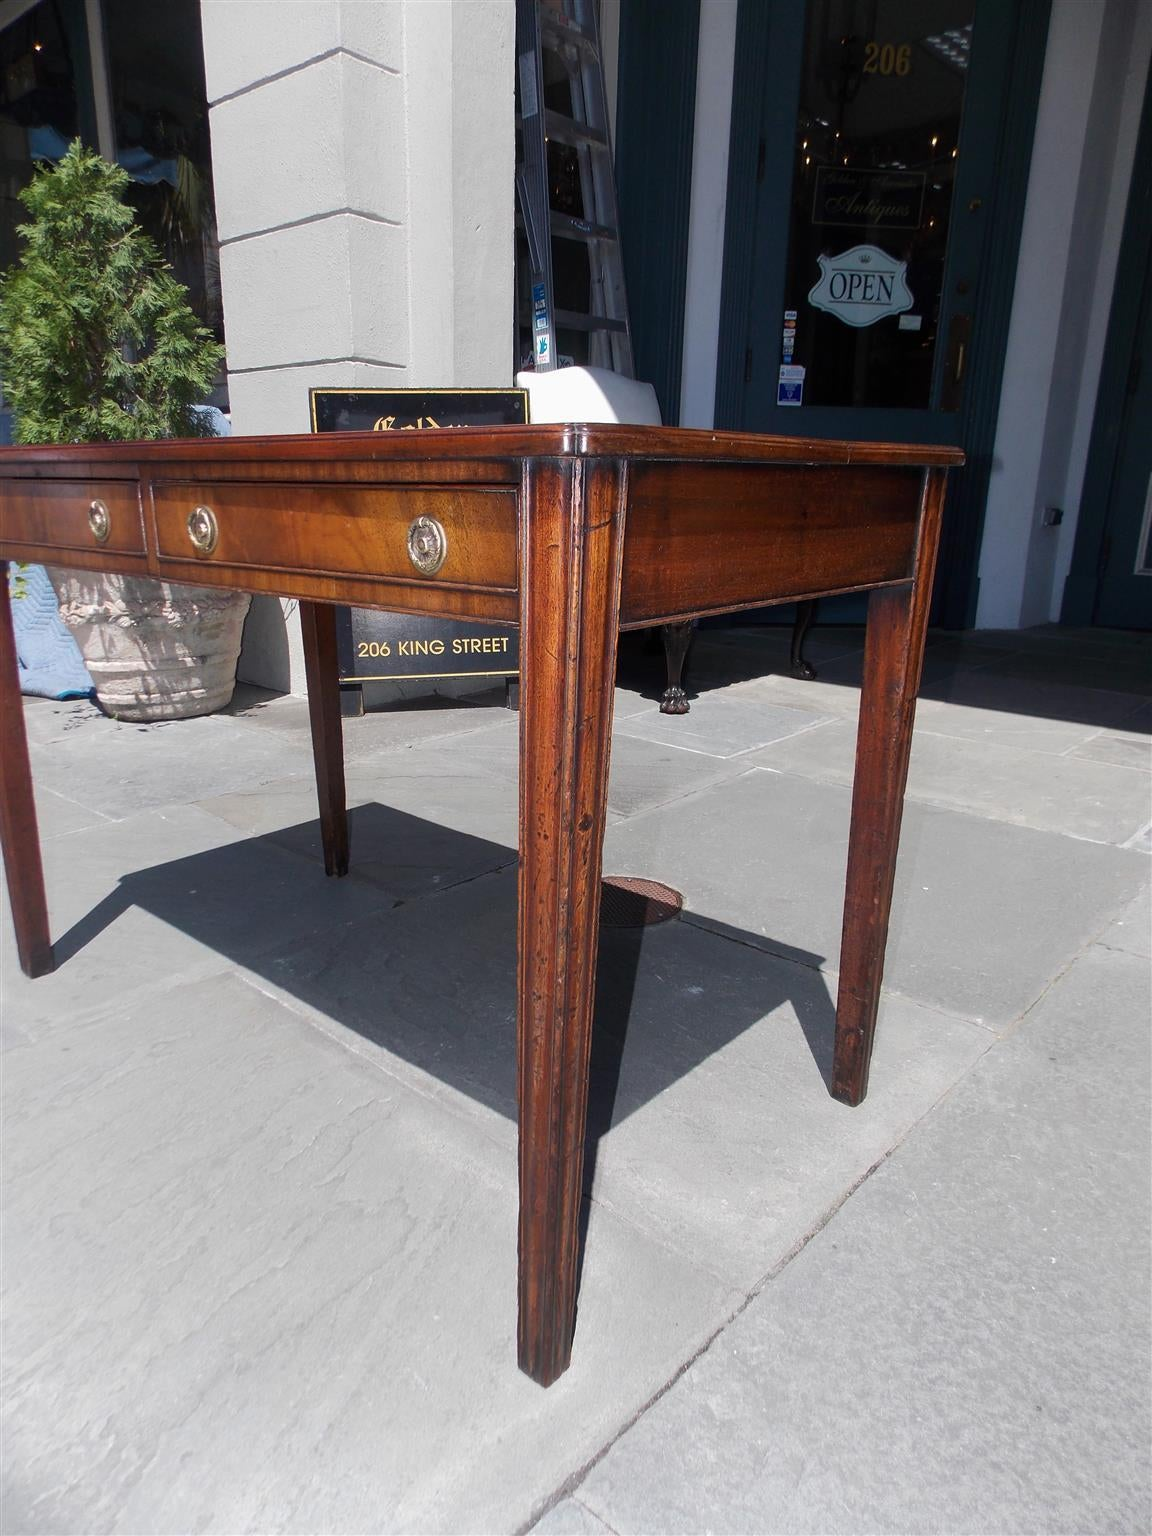 #9F582C Items Similar To English Mahogany Leather Top Writing Desk Circa 1780 with 1152x1536 px of Best Best Writing Desks 15361152 image @ avoidforclosure.info